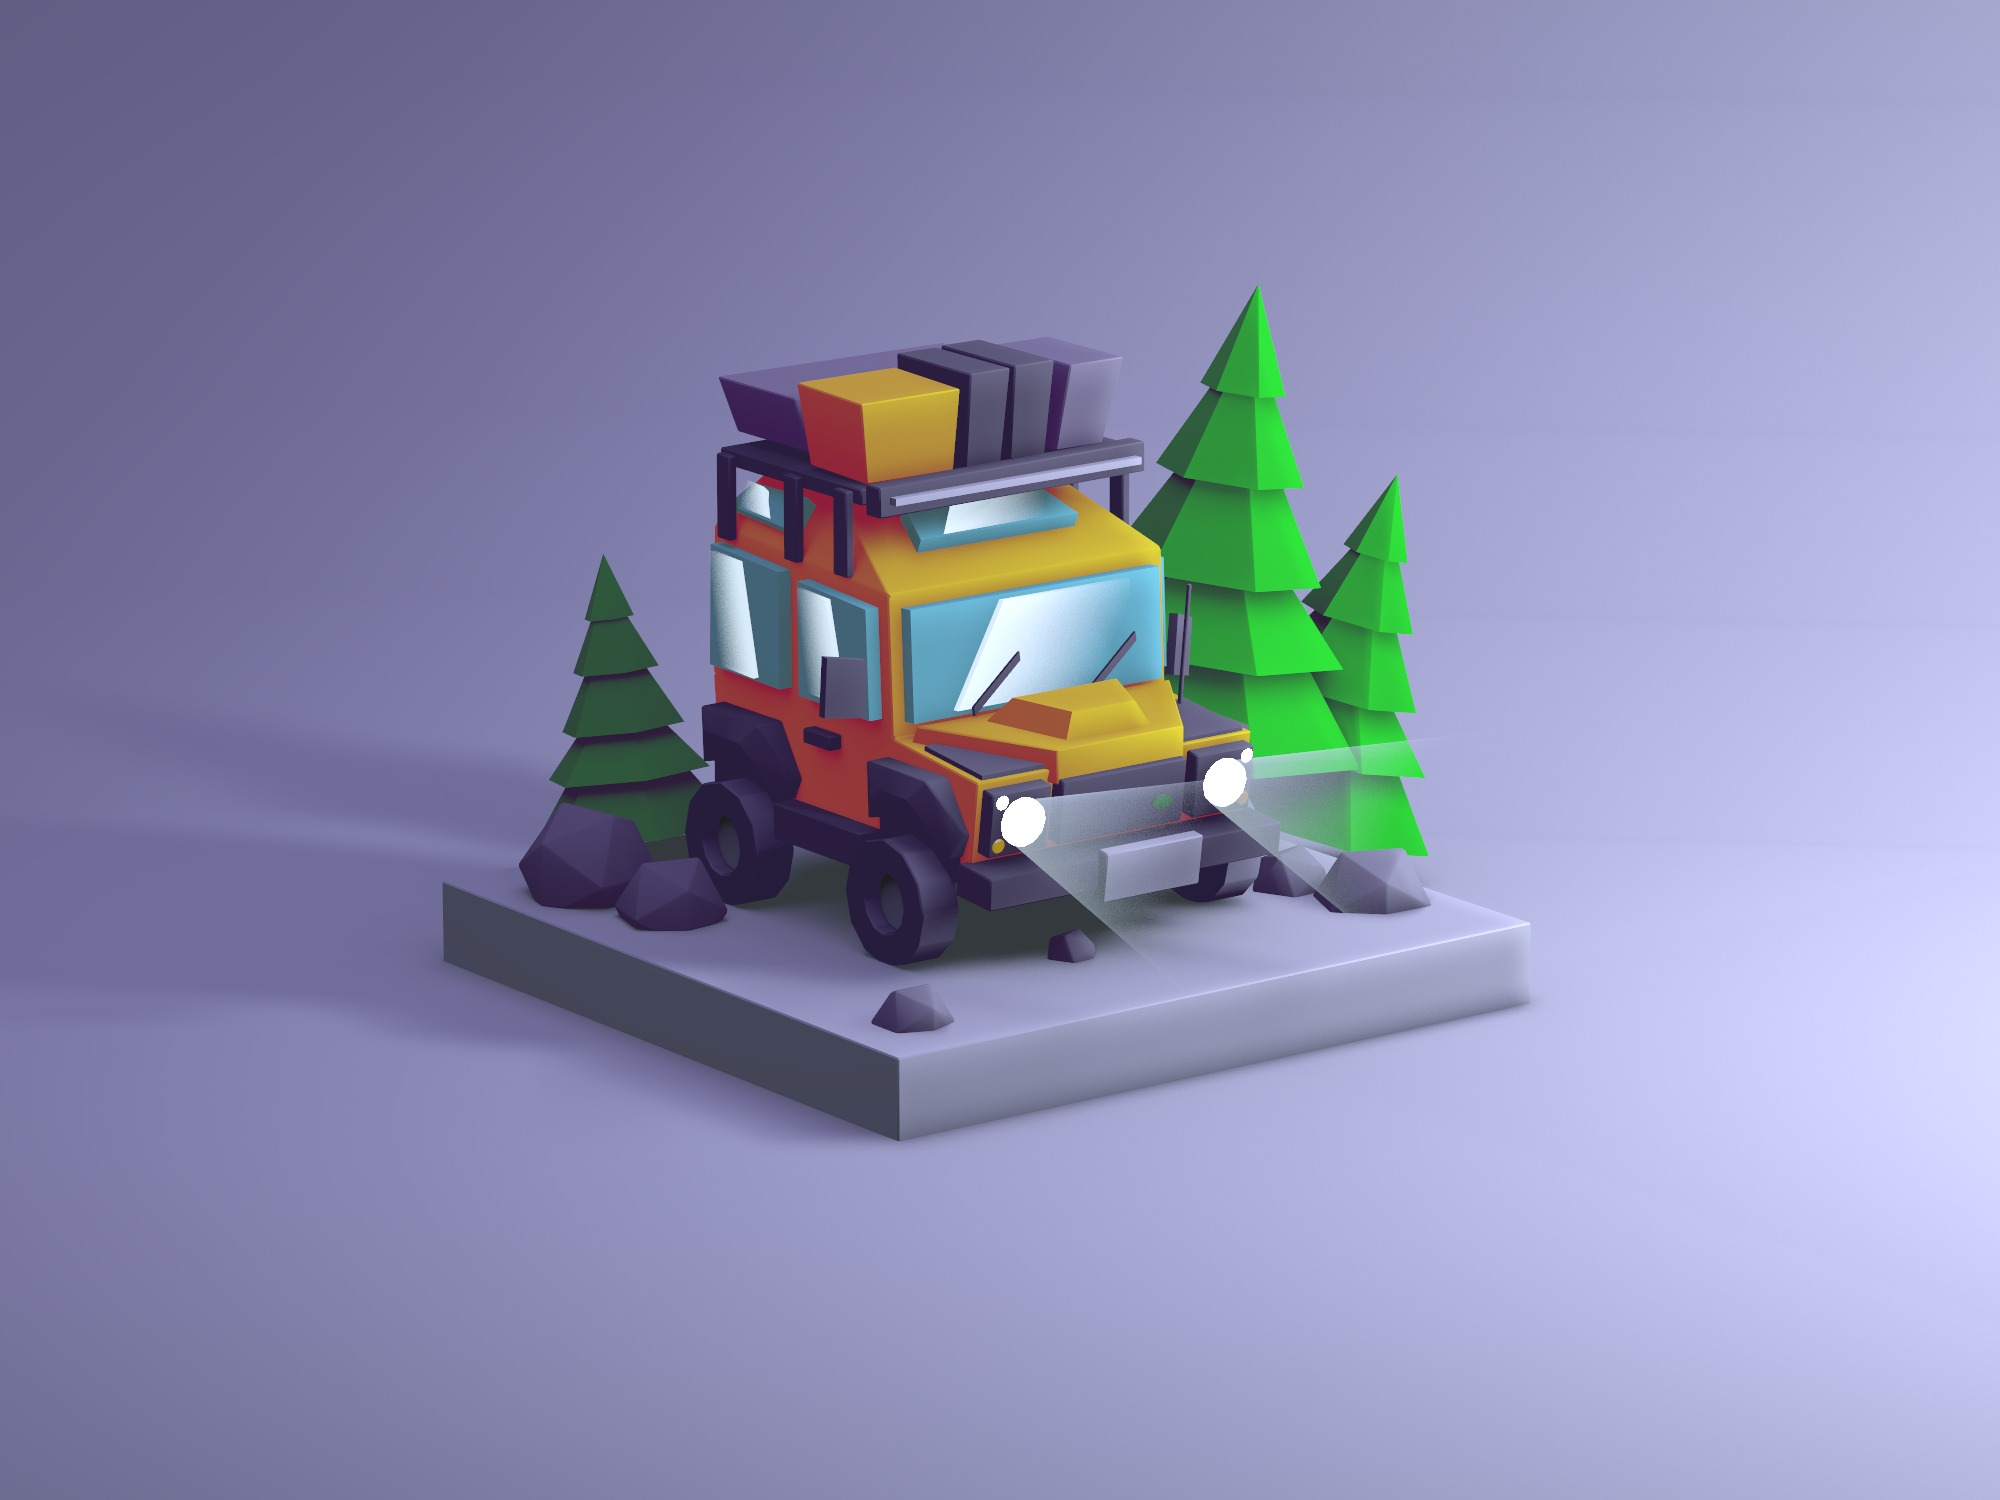 Low poly car illustration - 3D design by Vectary templates Jun 2, 2018